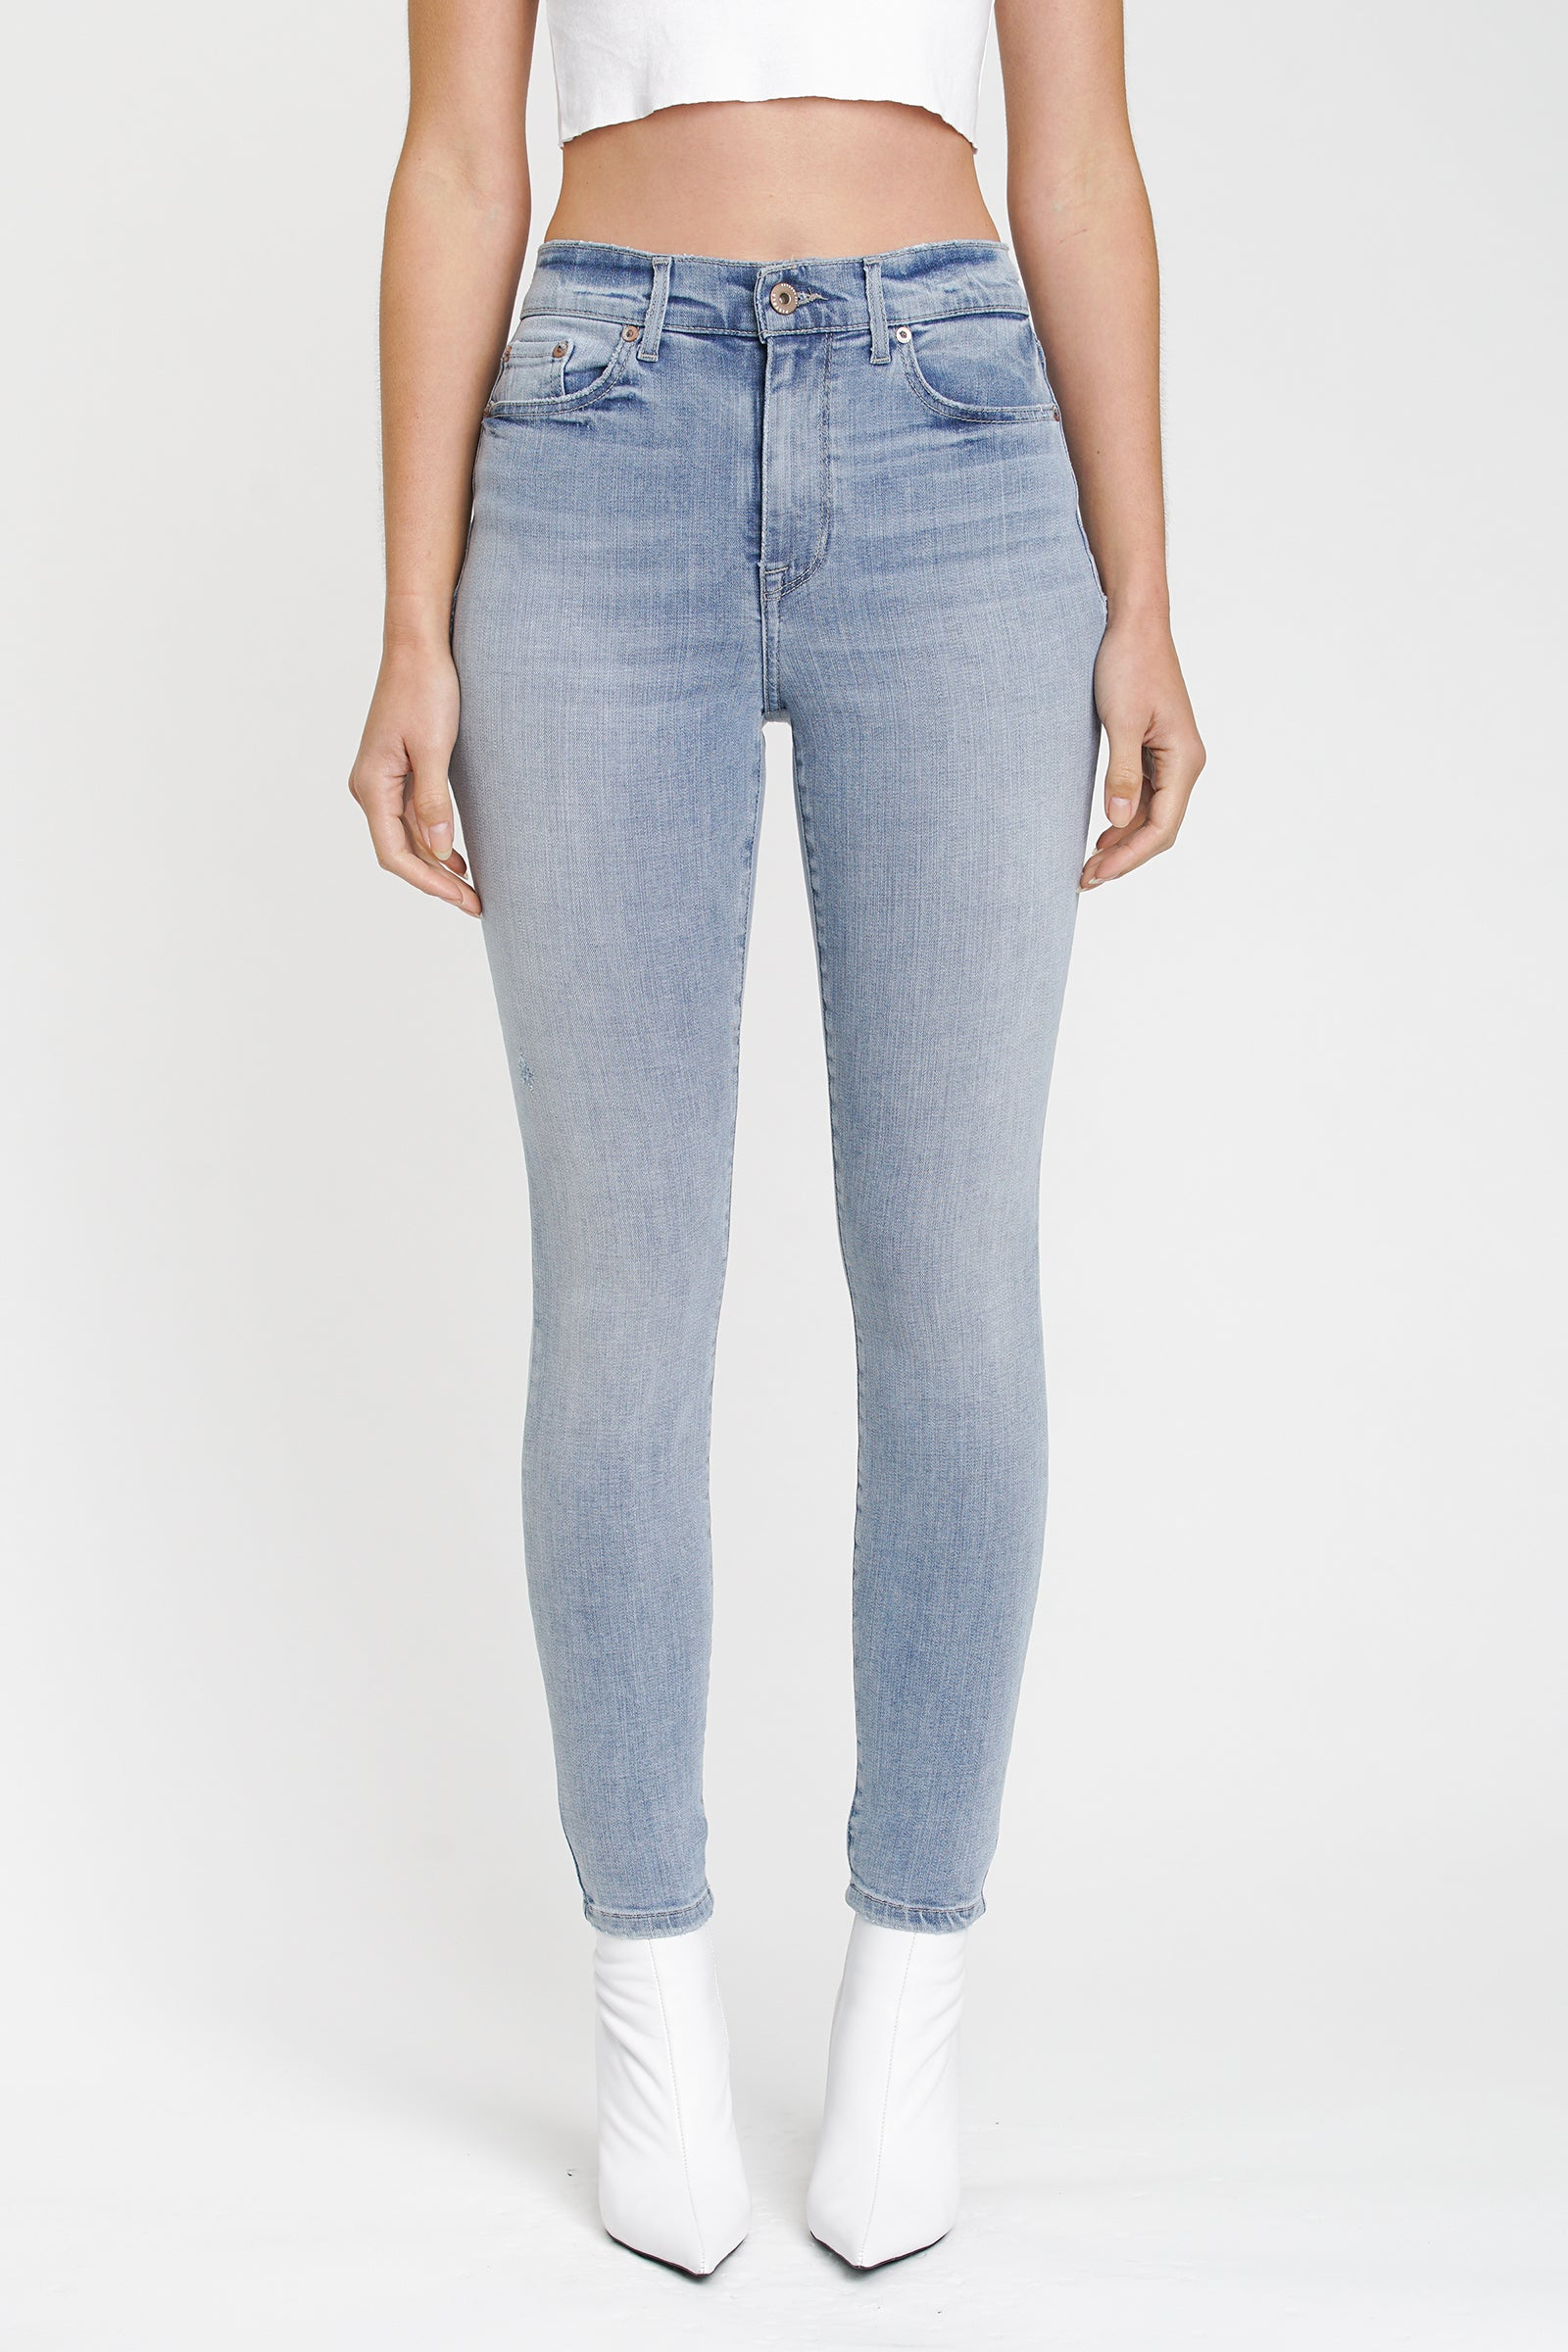 Aline High Rise Skinny - Waves